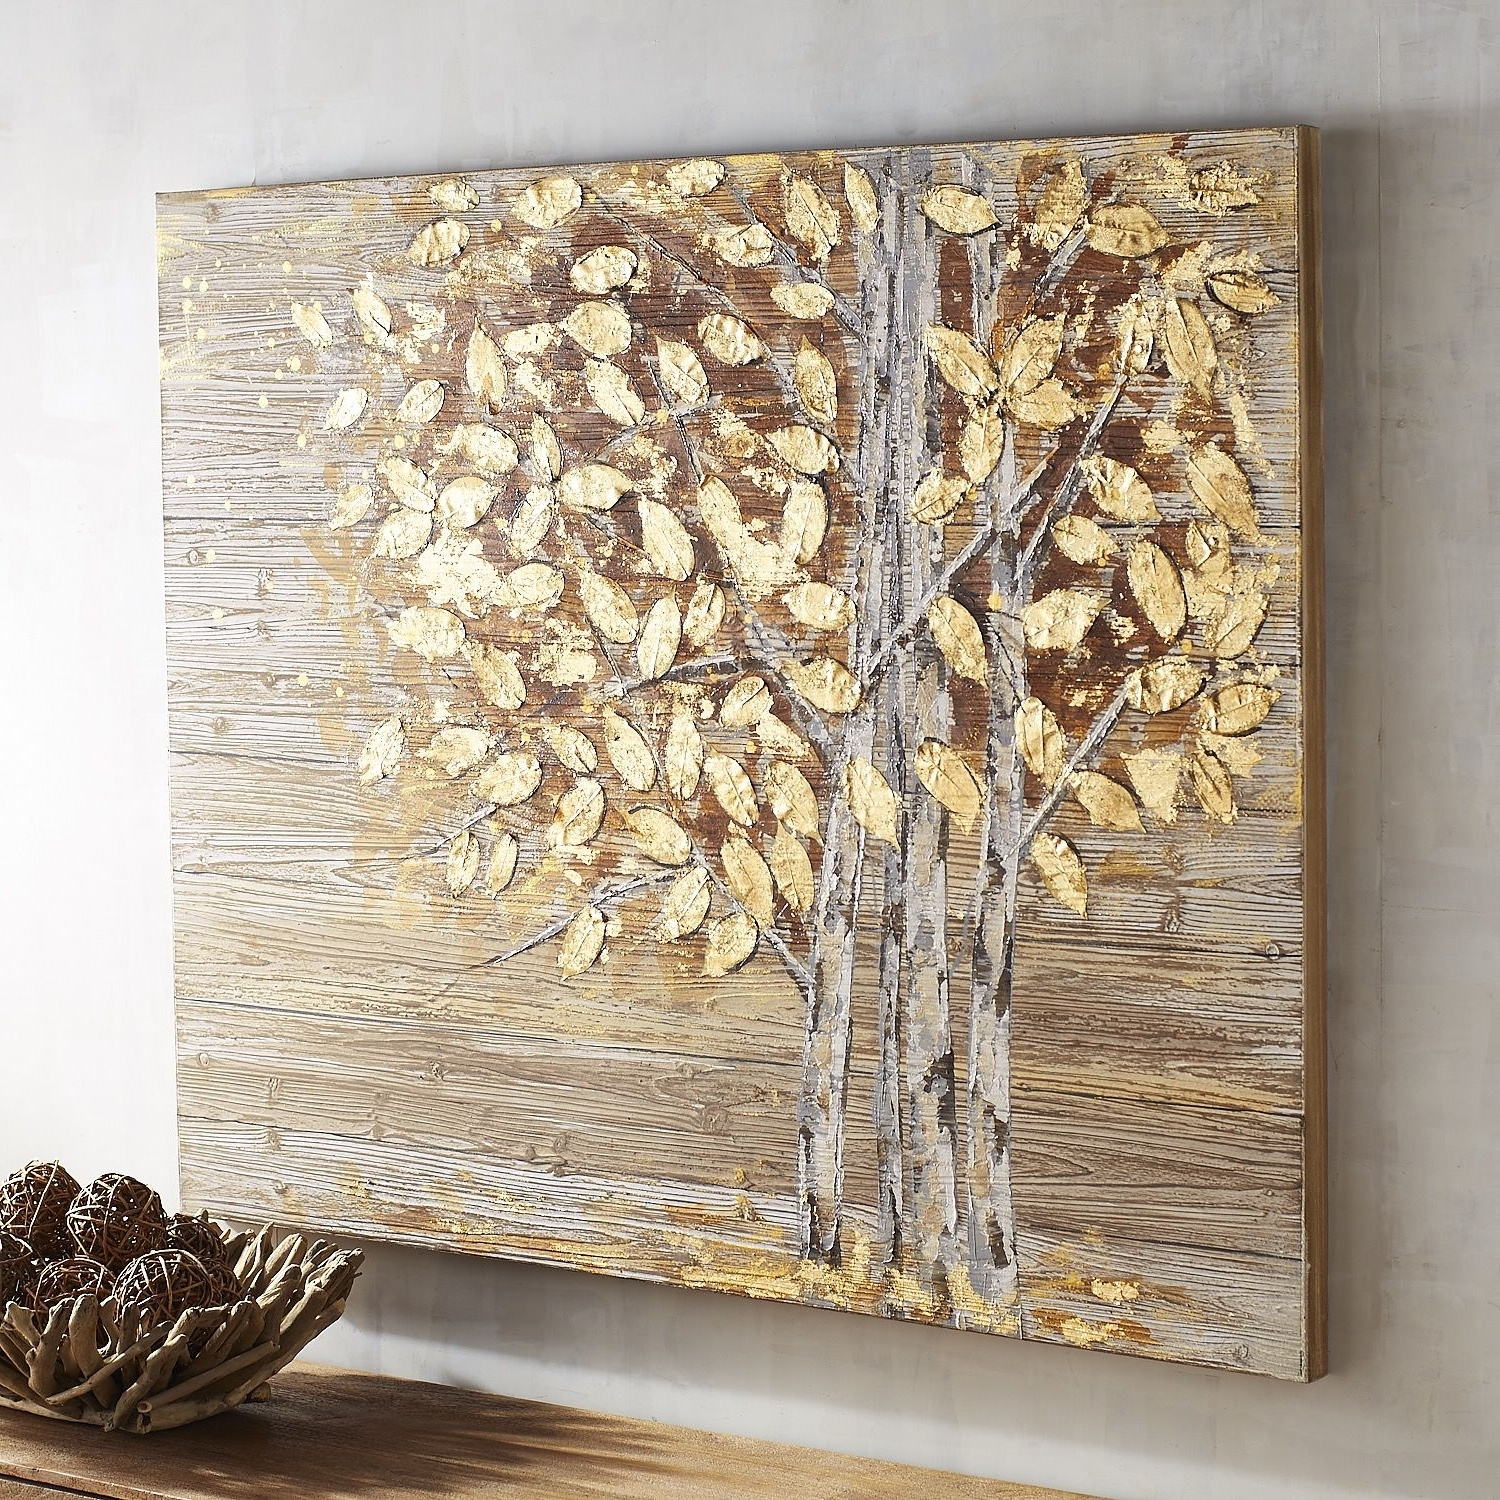 56 Pier One Wall Art, Timeless Tree Wall Decor - Swinkimorskie with regard to Well-known Pier 1 Wall Art